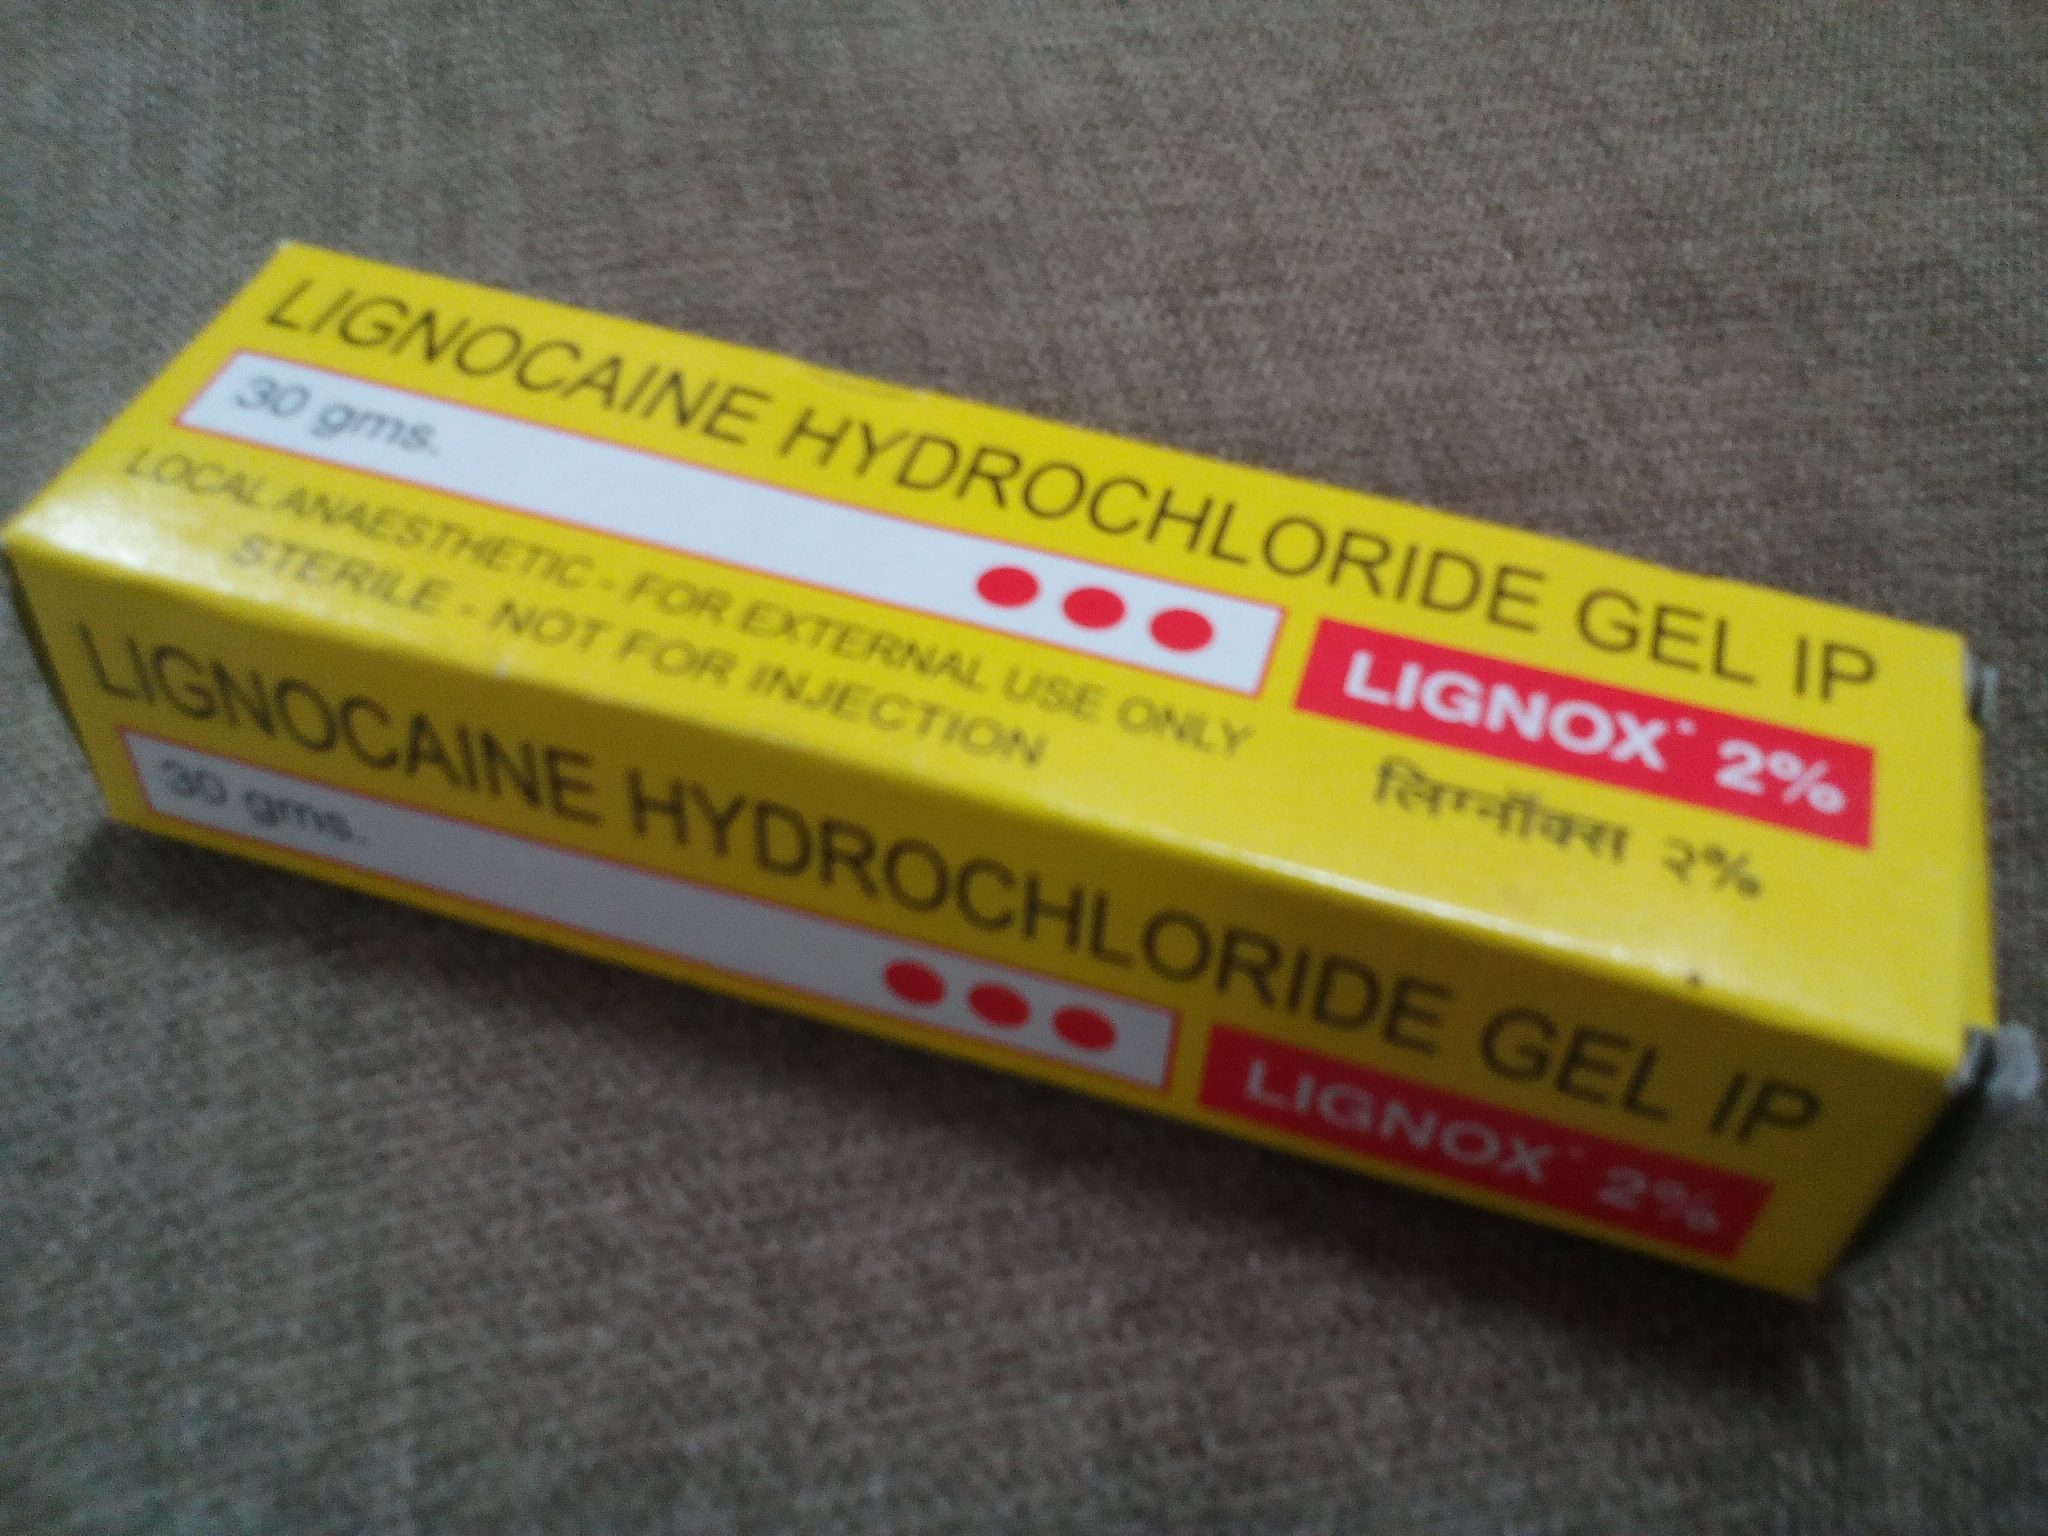 image lignox 2% gel Lignocaine is a substance that causes local anesthesia